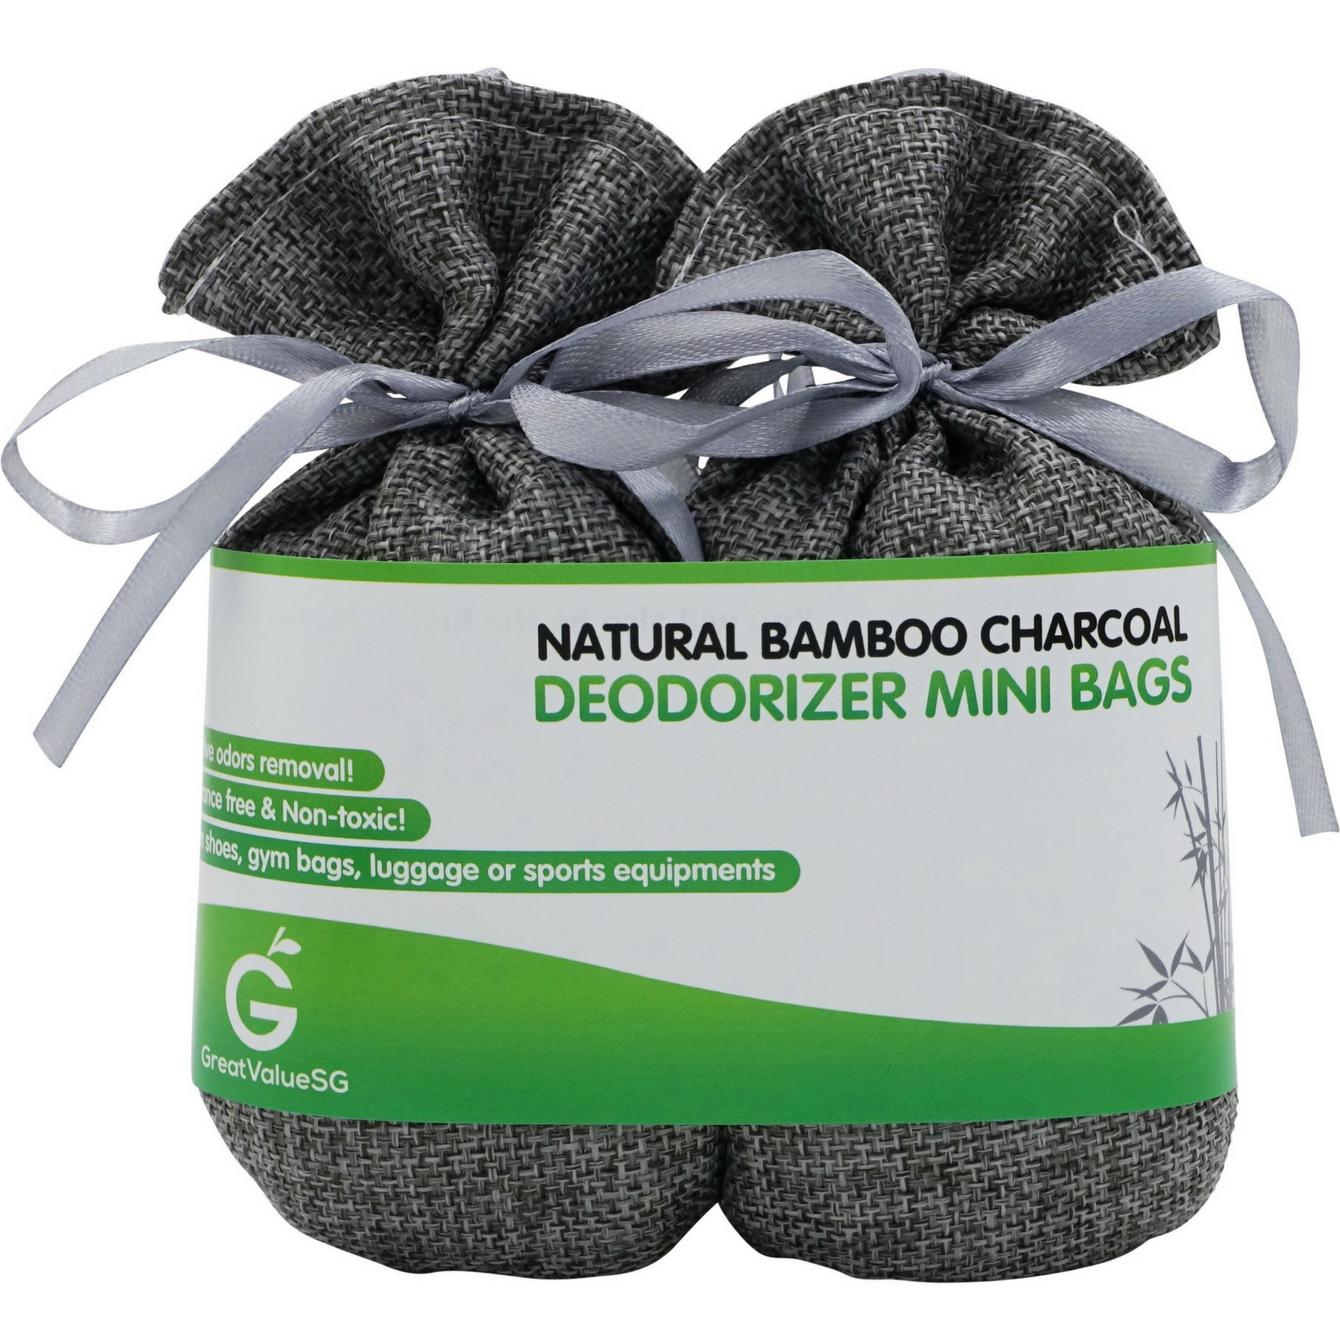 Top 10 Great Value Sg Natural Bamboo Charcoal Deodorizer Mini Bags Best Odor Eliminator And Moisture Absorber Keep Air Dry And Fresh Portable Perfect For Shoe Gym Bag Drawer And Locker